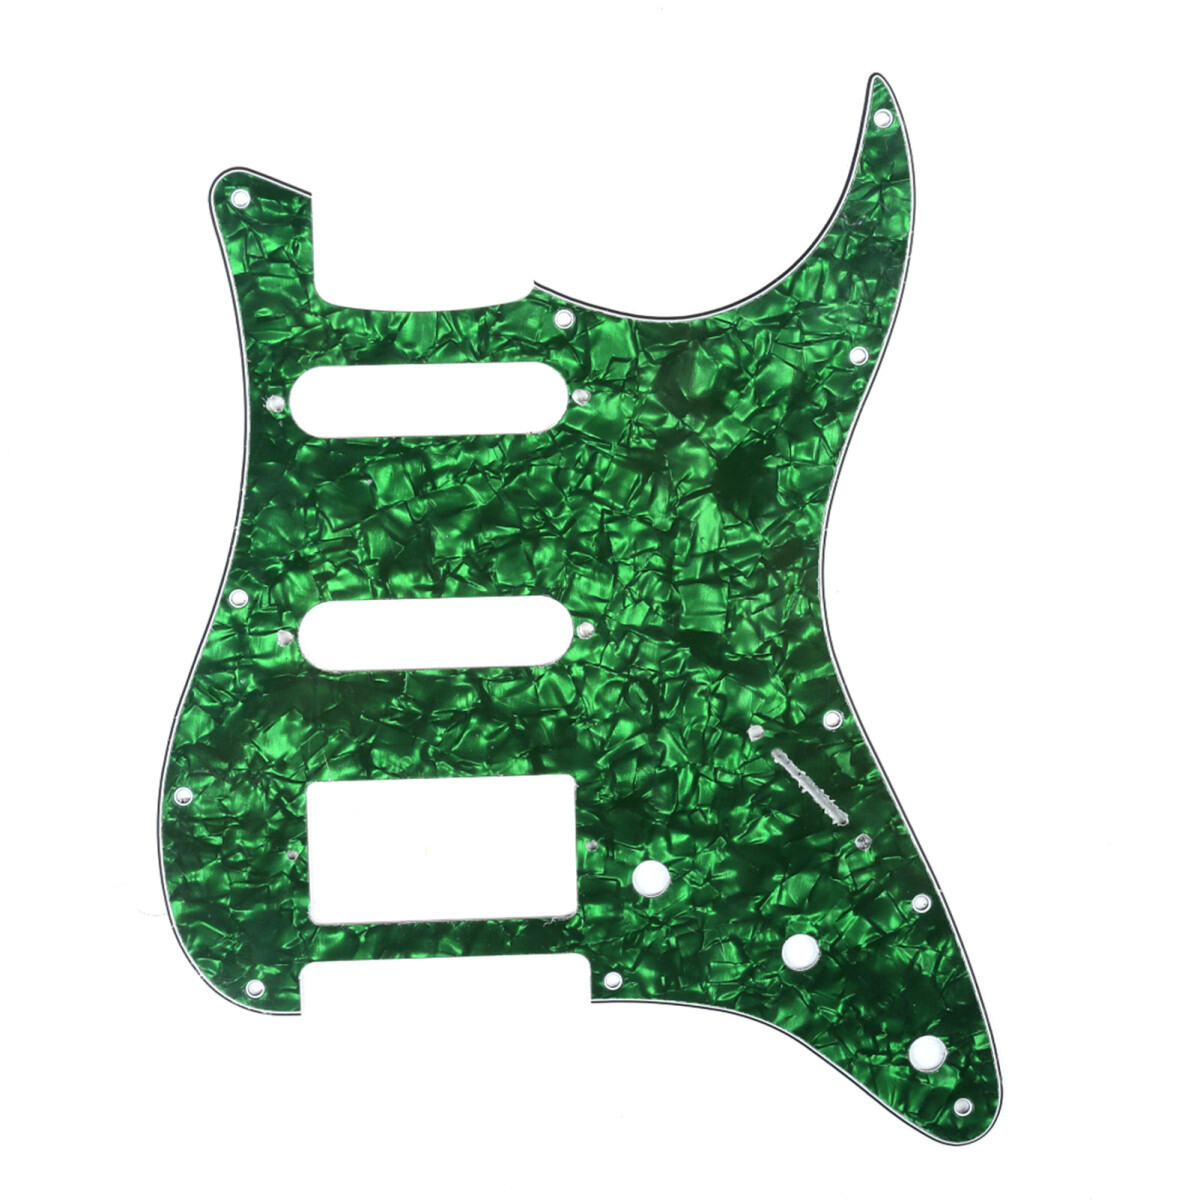 Brio 11 Hole HSS Strat® Pickguard for Fender US/Mex Made Standard Stratocaster Modern Style Pearoid Green